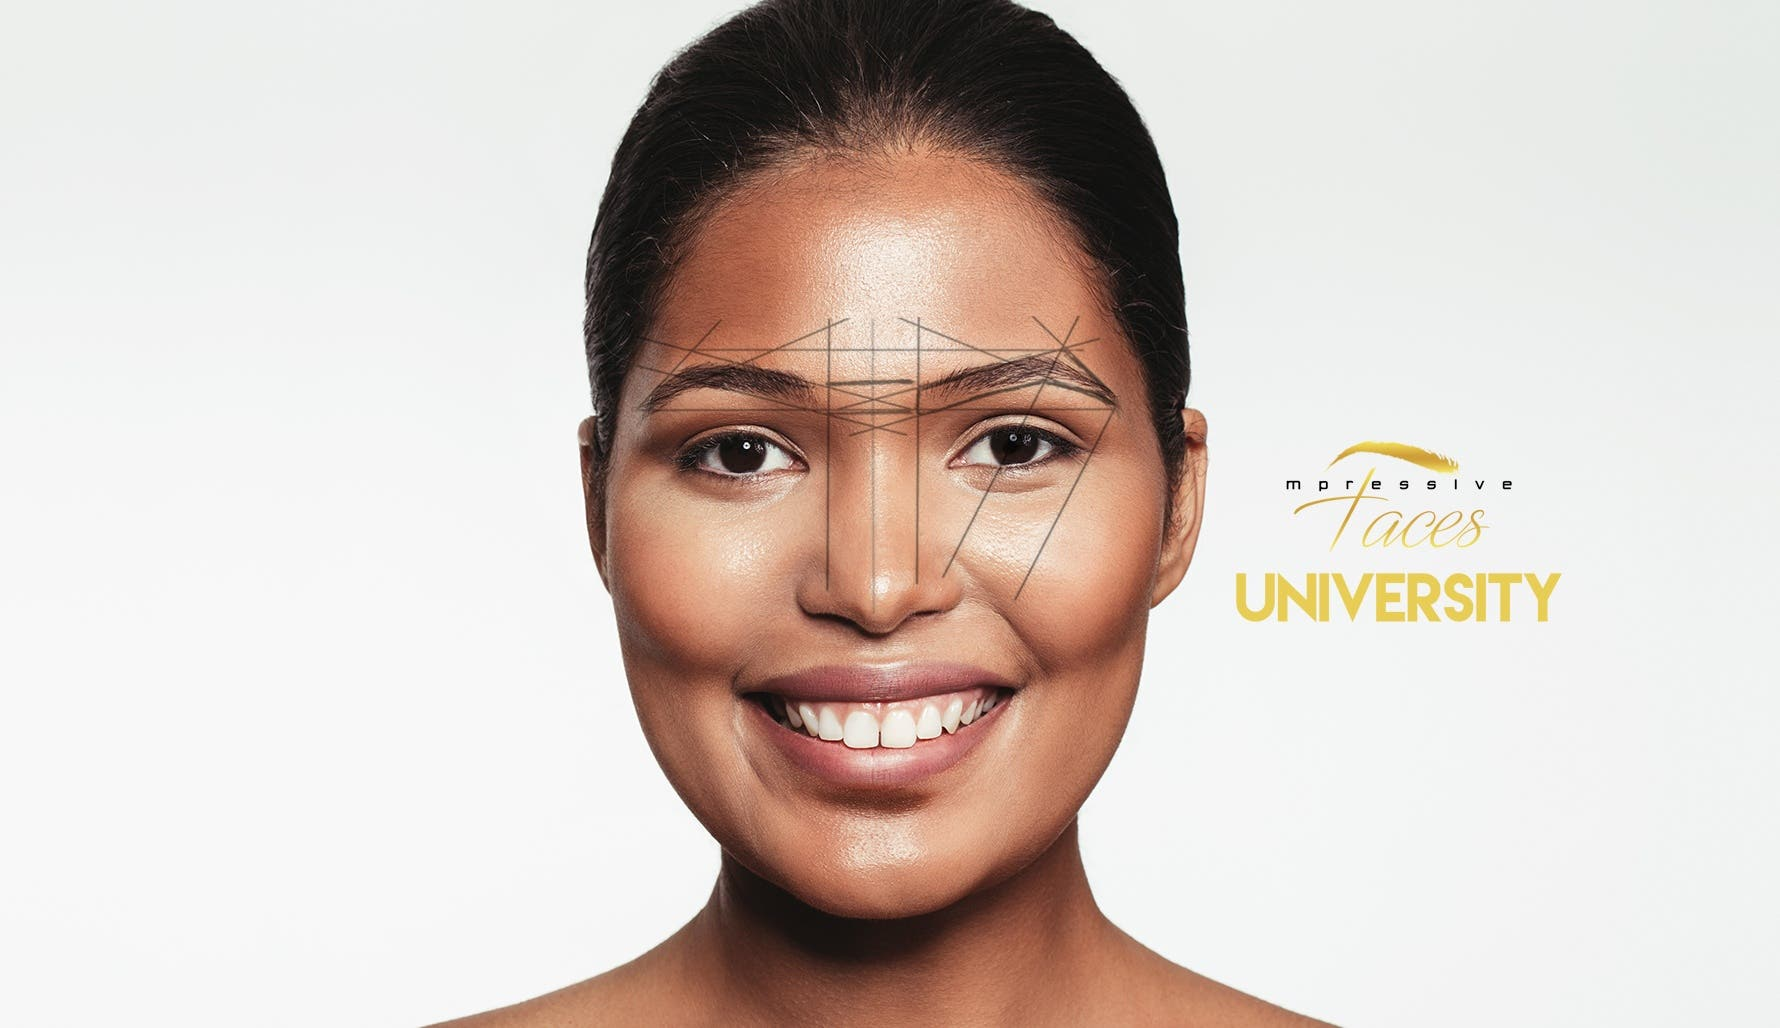 S.H.A.P.E Brow Mapping Digital Course